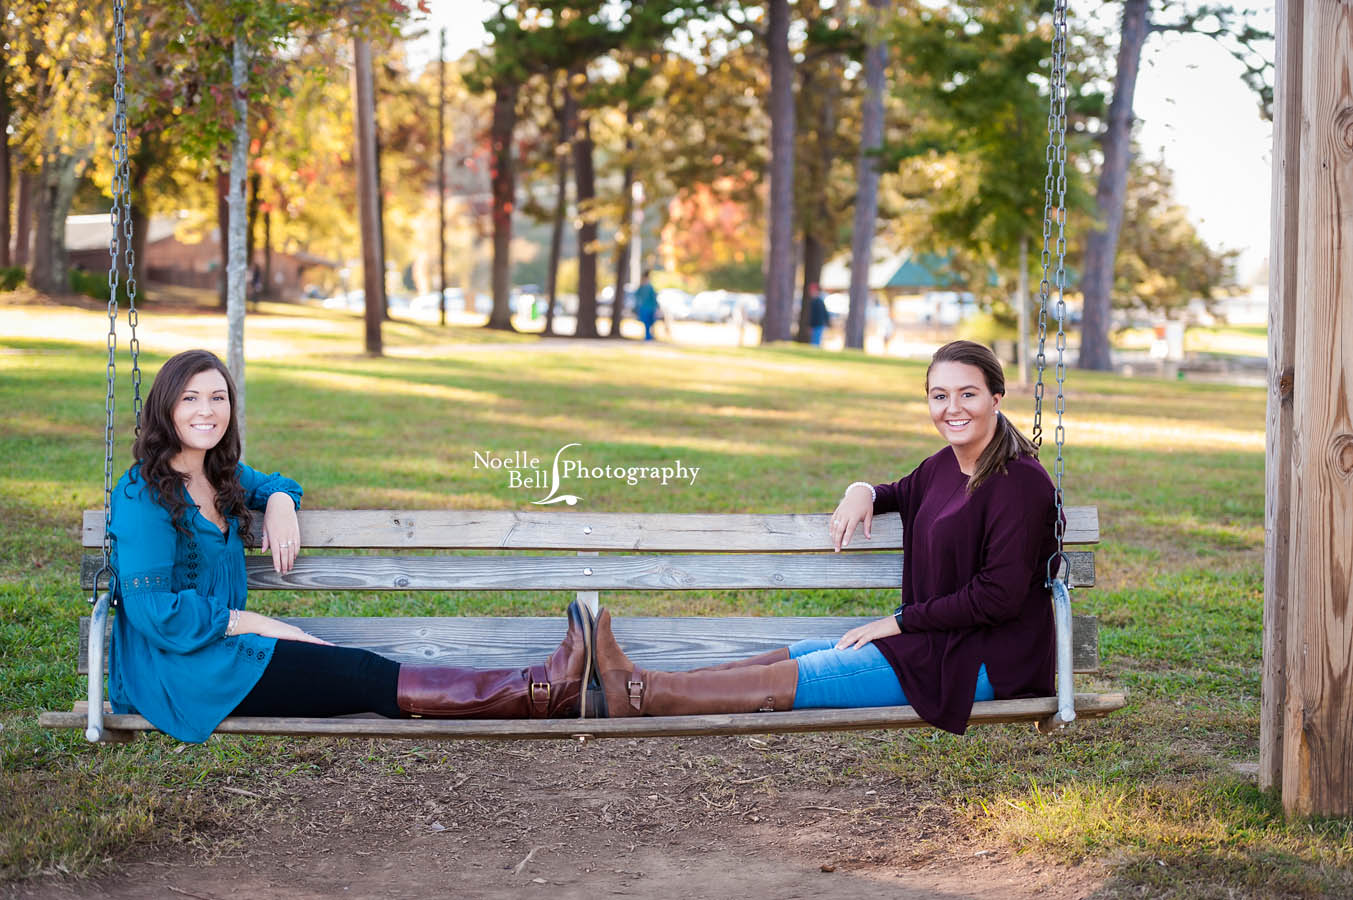 Senior Girl, BFF, Best Friend Pictures, Senior Pictures, Knoxville TN, Noelle Bell Photography, Senior Portrait Photographer Knoxville TN